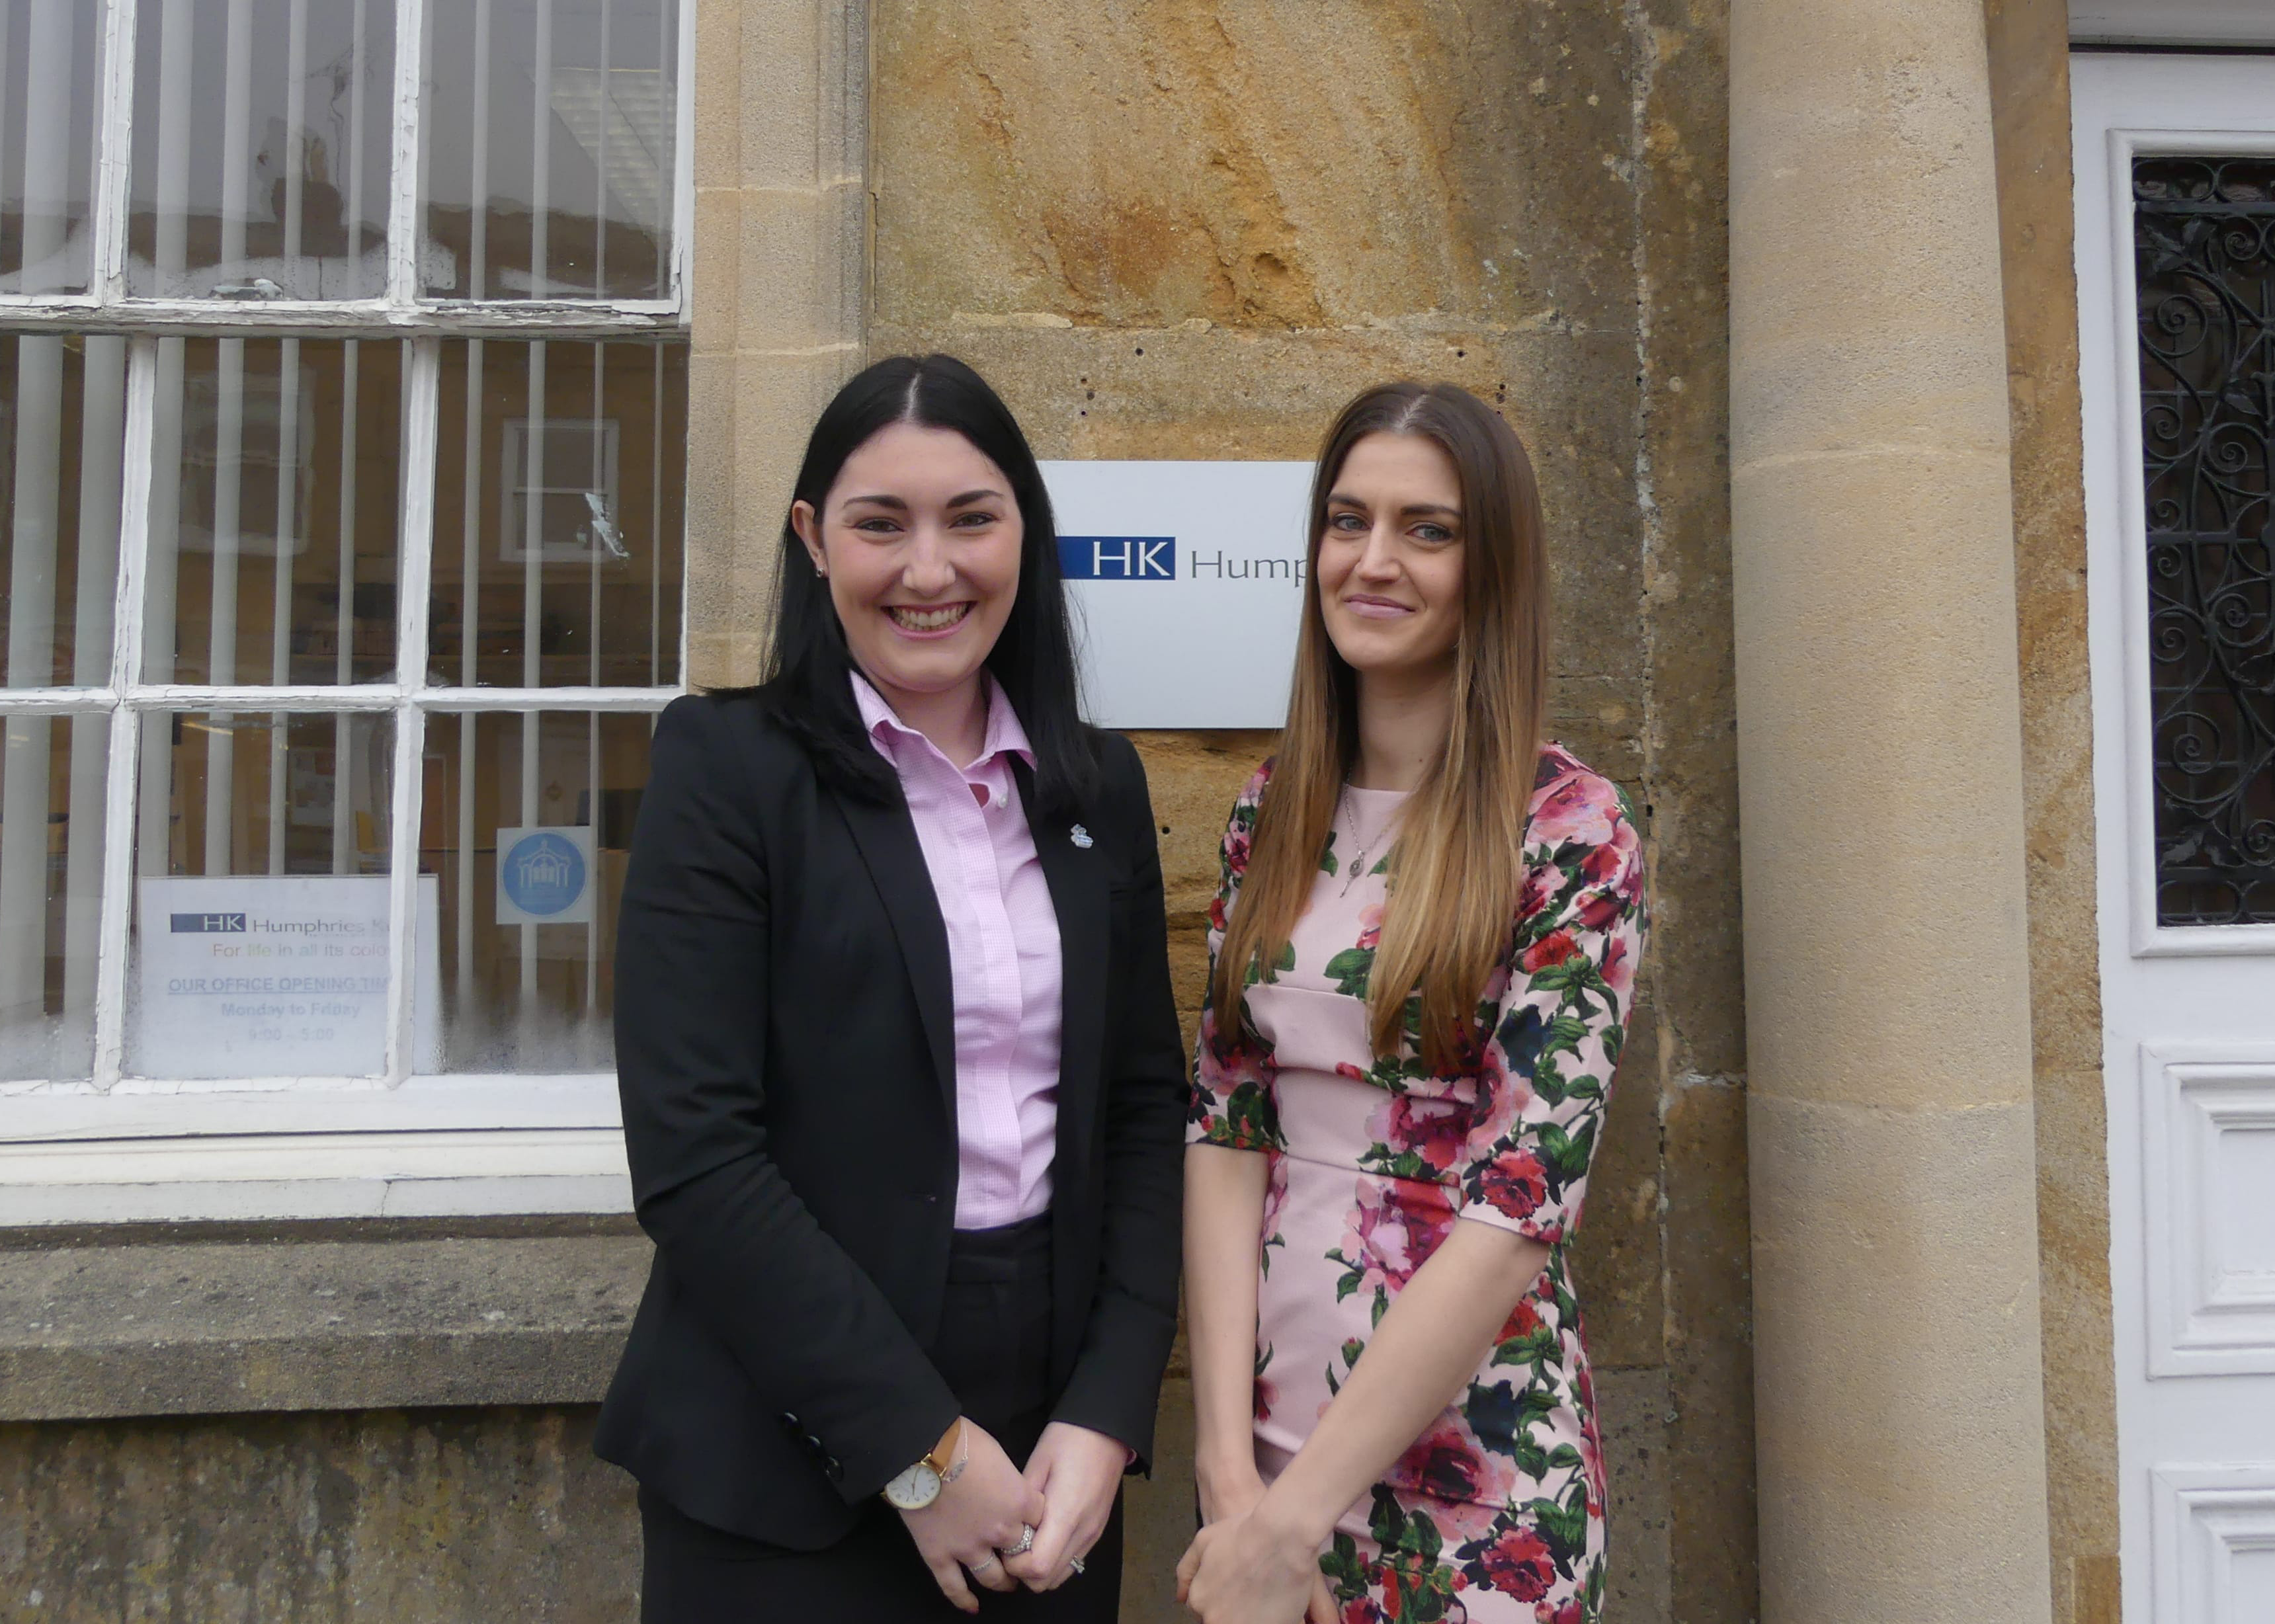 Humphries Kirk Crewkerne, Abigail Doggrell and Kelly Taylor